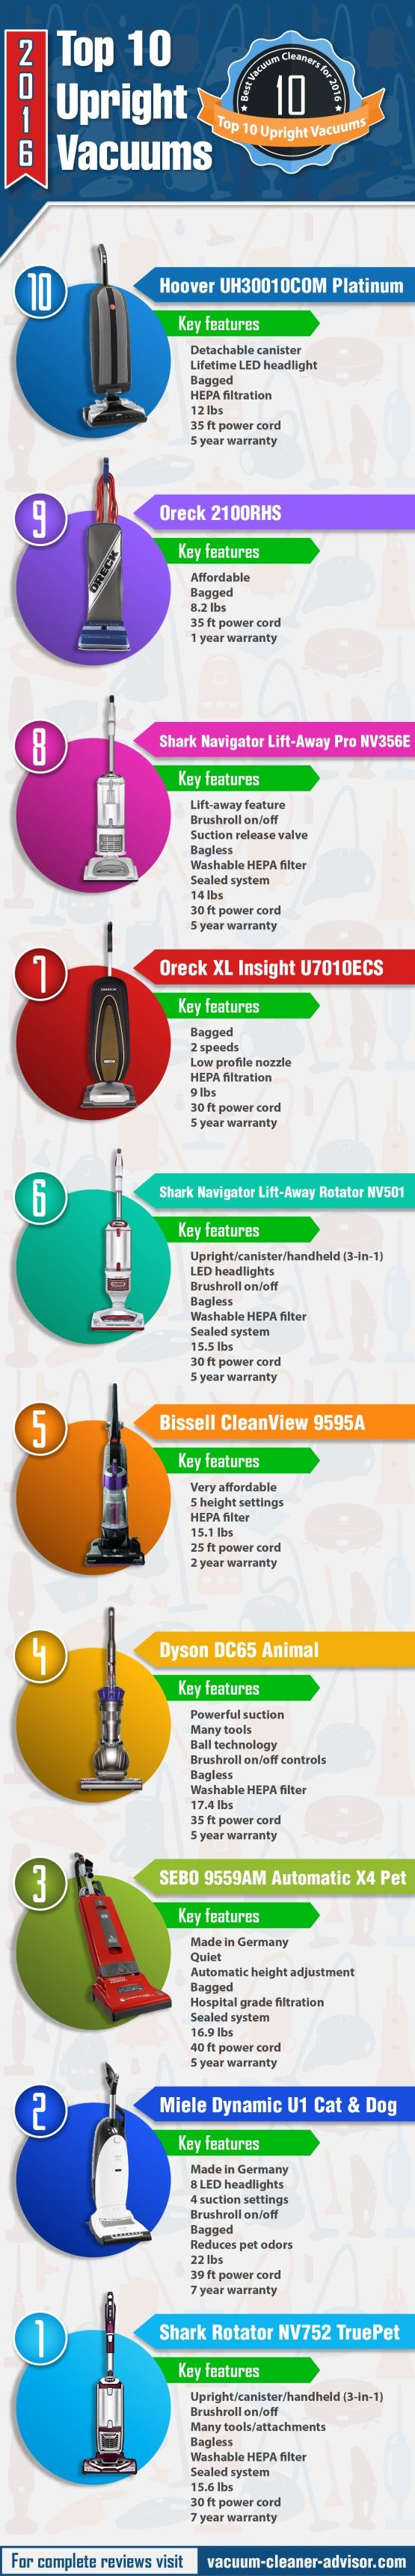 top 10 upright vacuum cleaners infographic